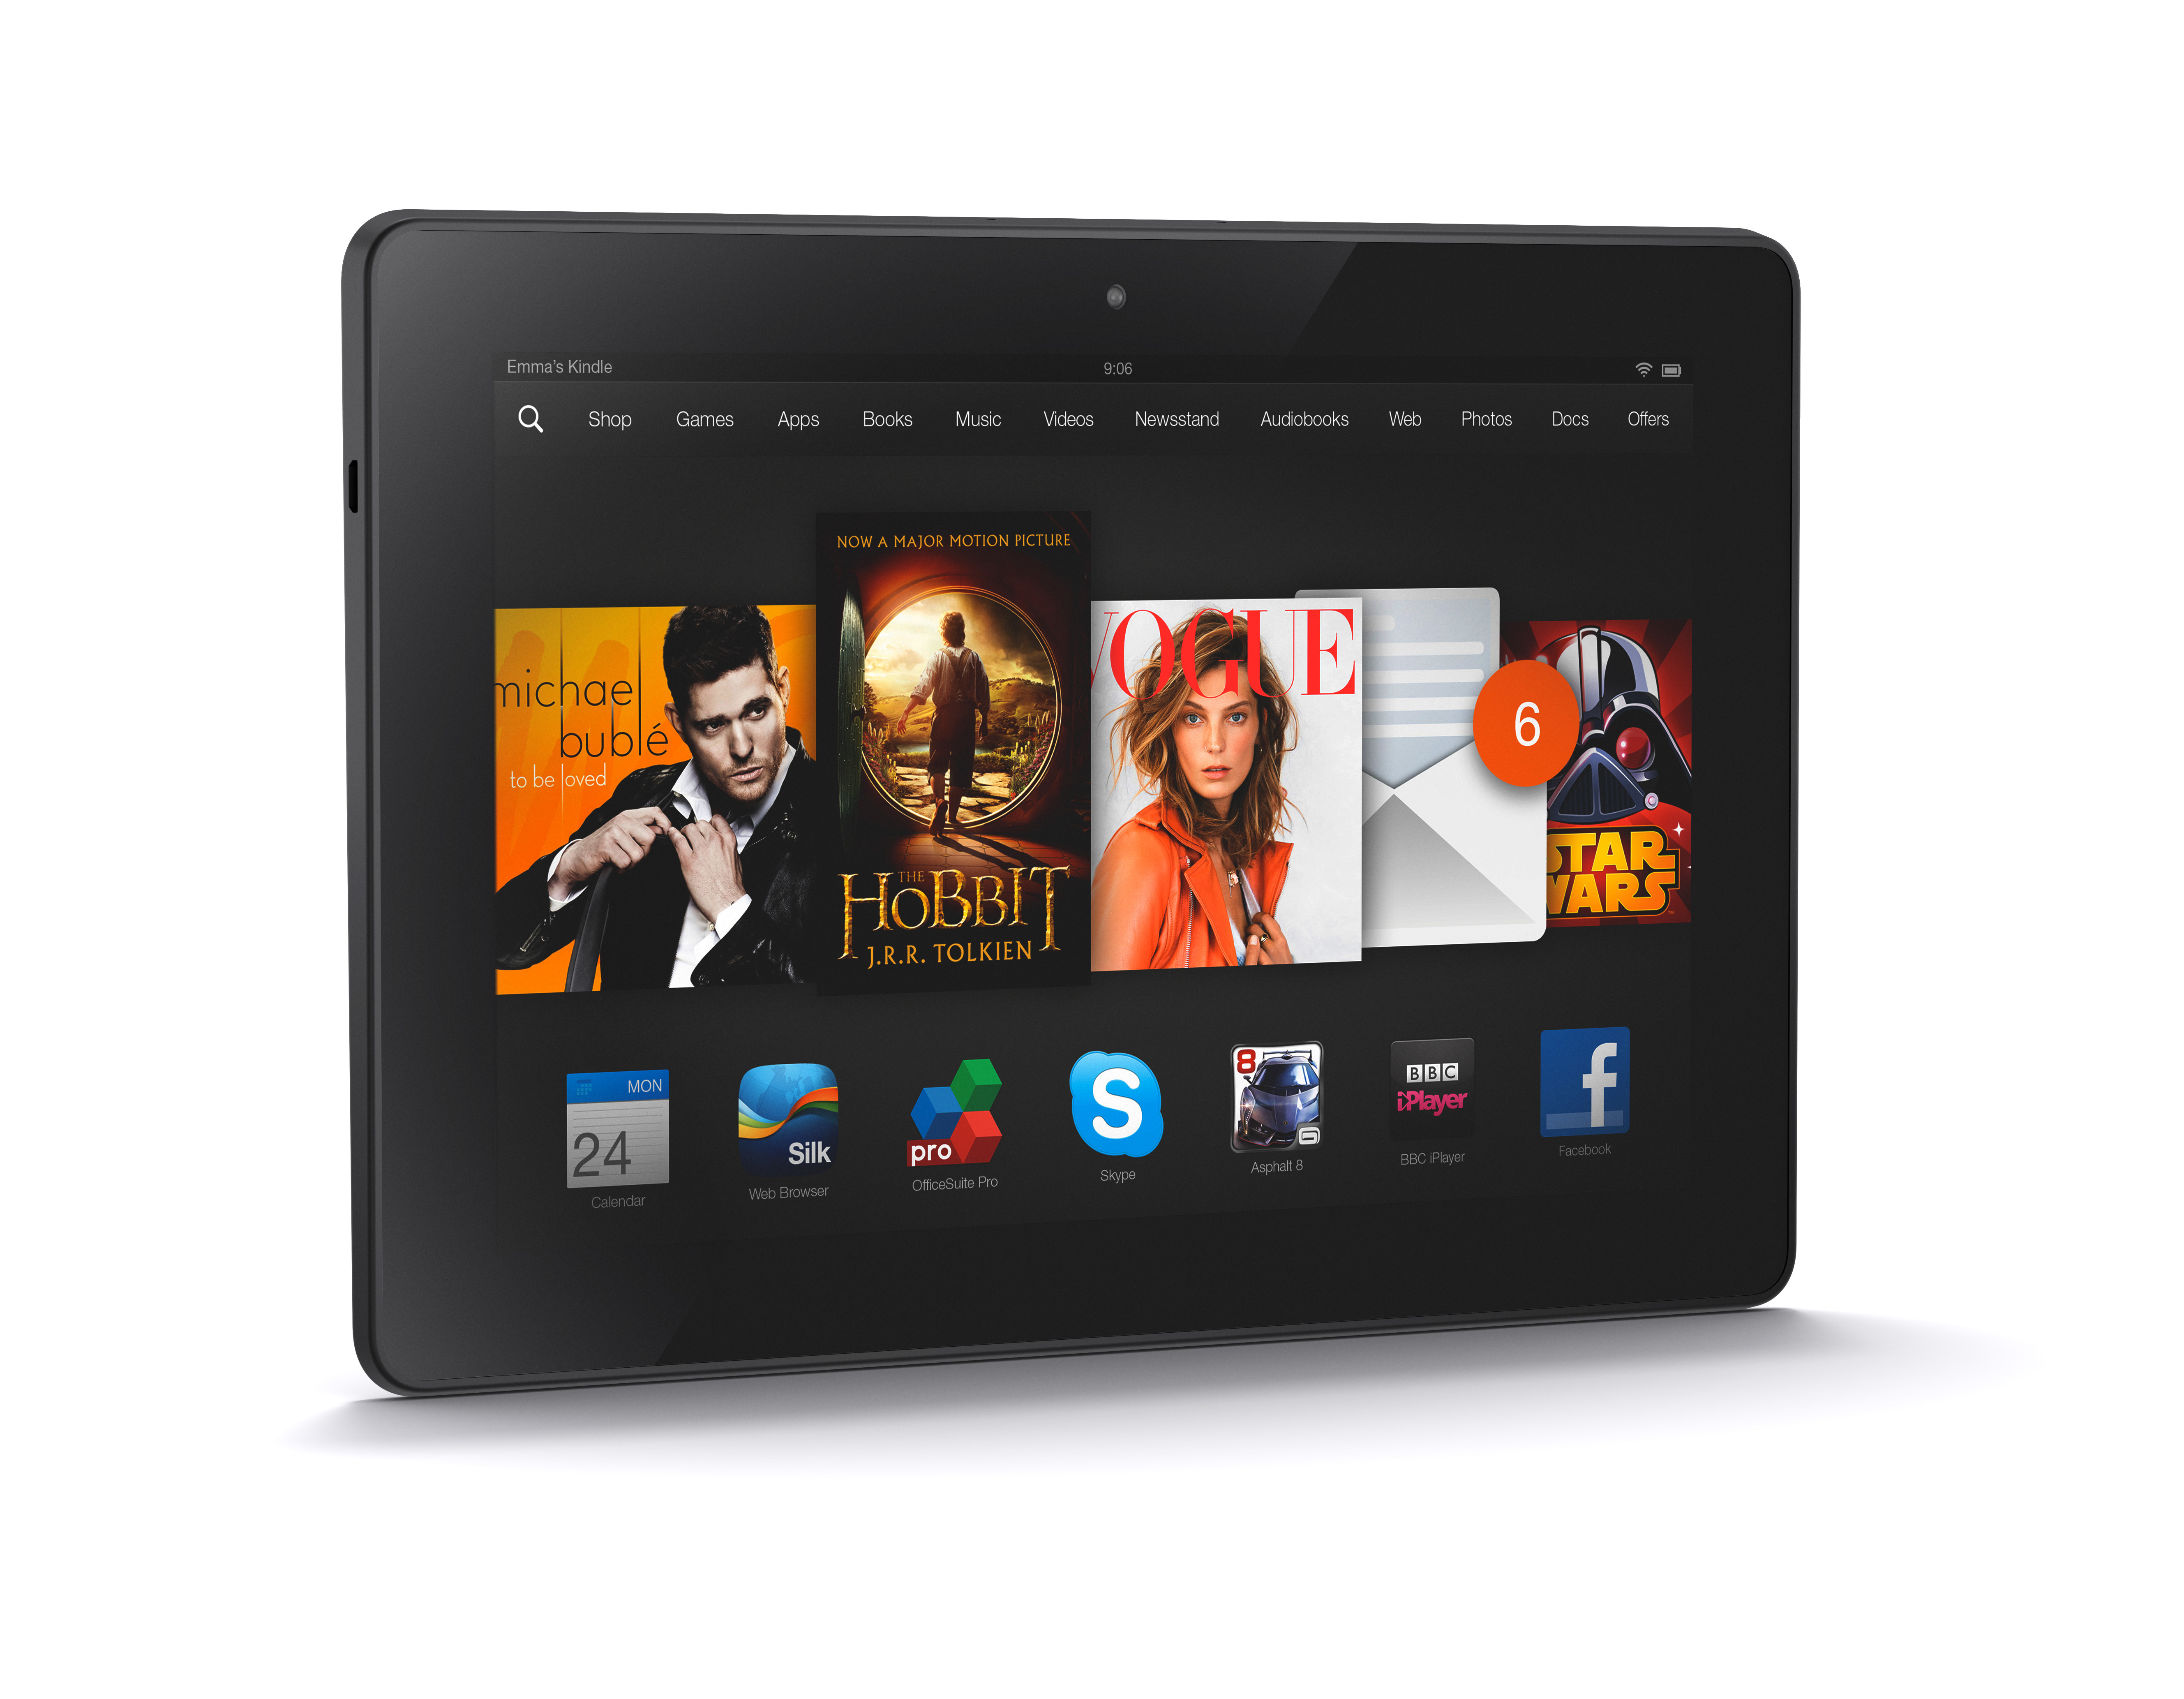 How To Root Amazon Kindle Fire Hdx 8 9 Guide Reviews